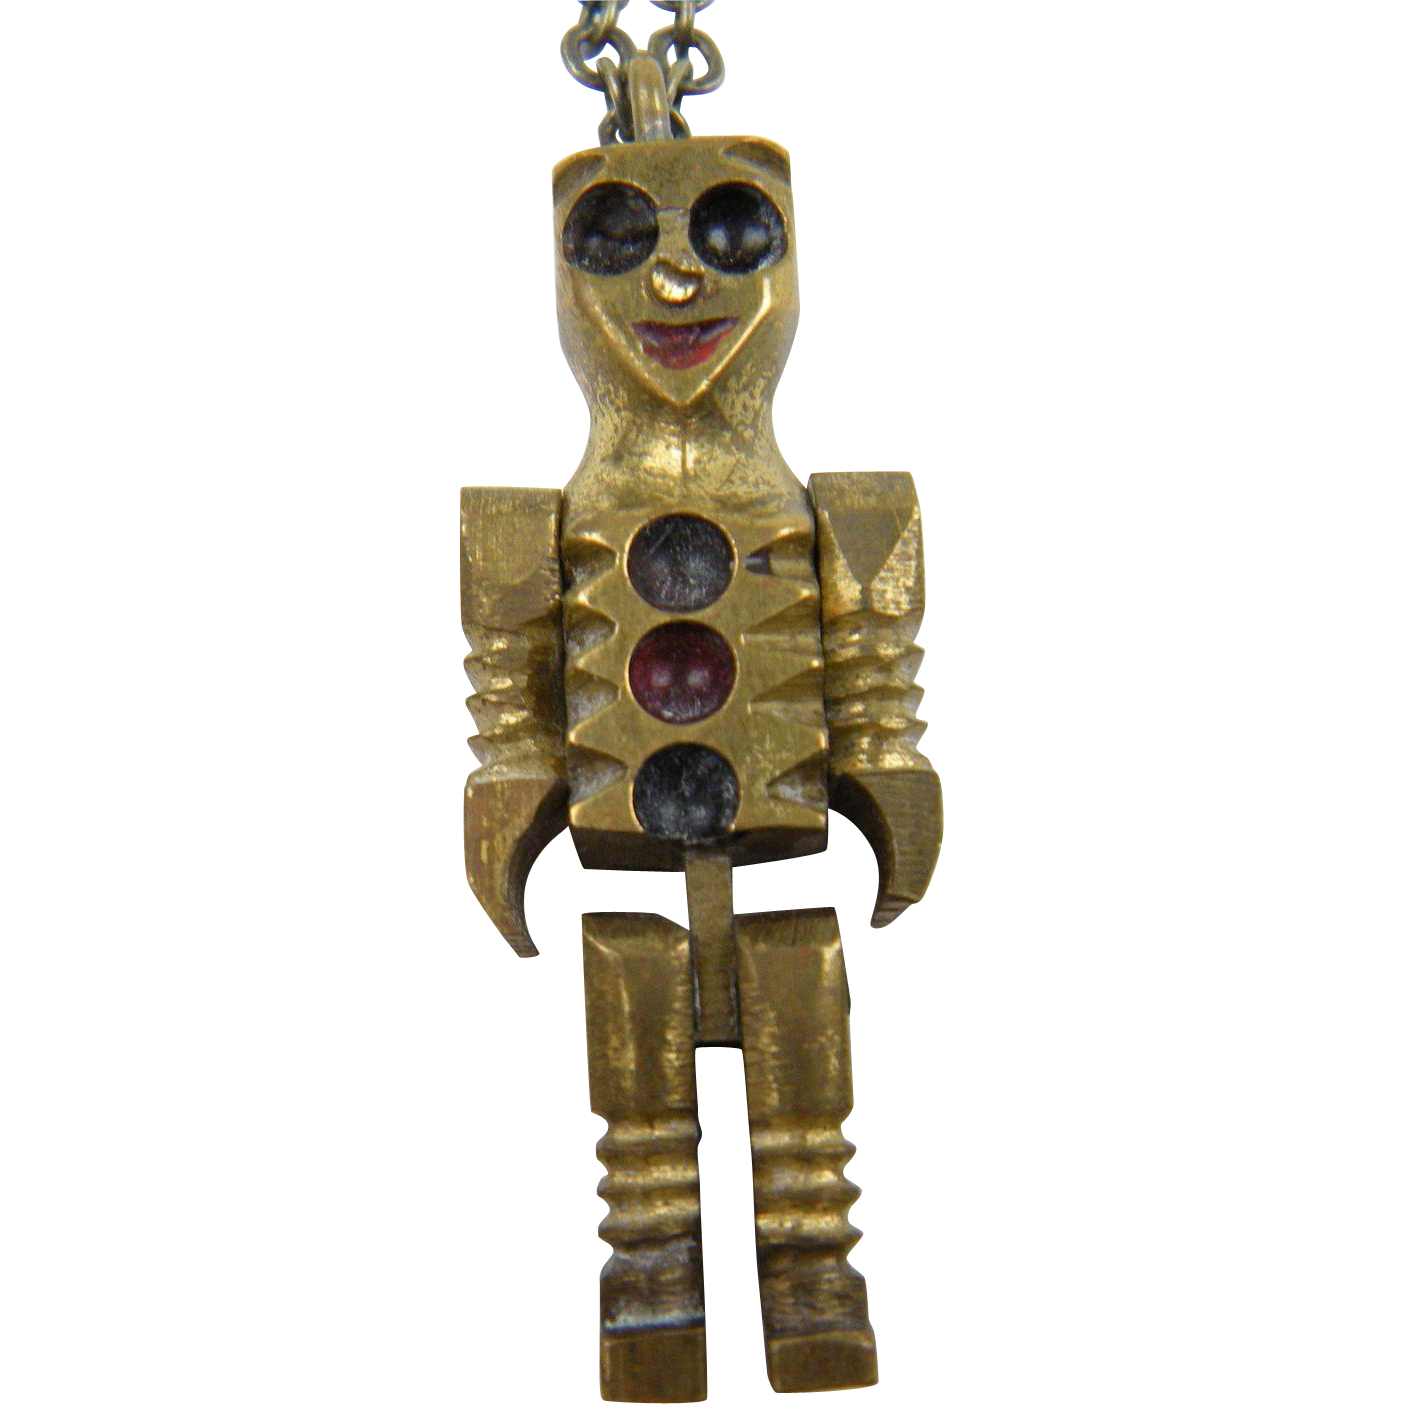 Unique Robot Pendant with Movable Arms and Legs